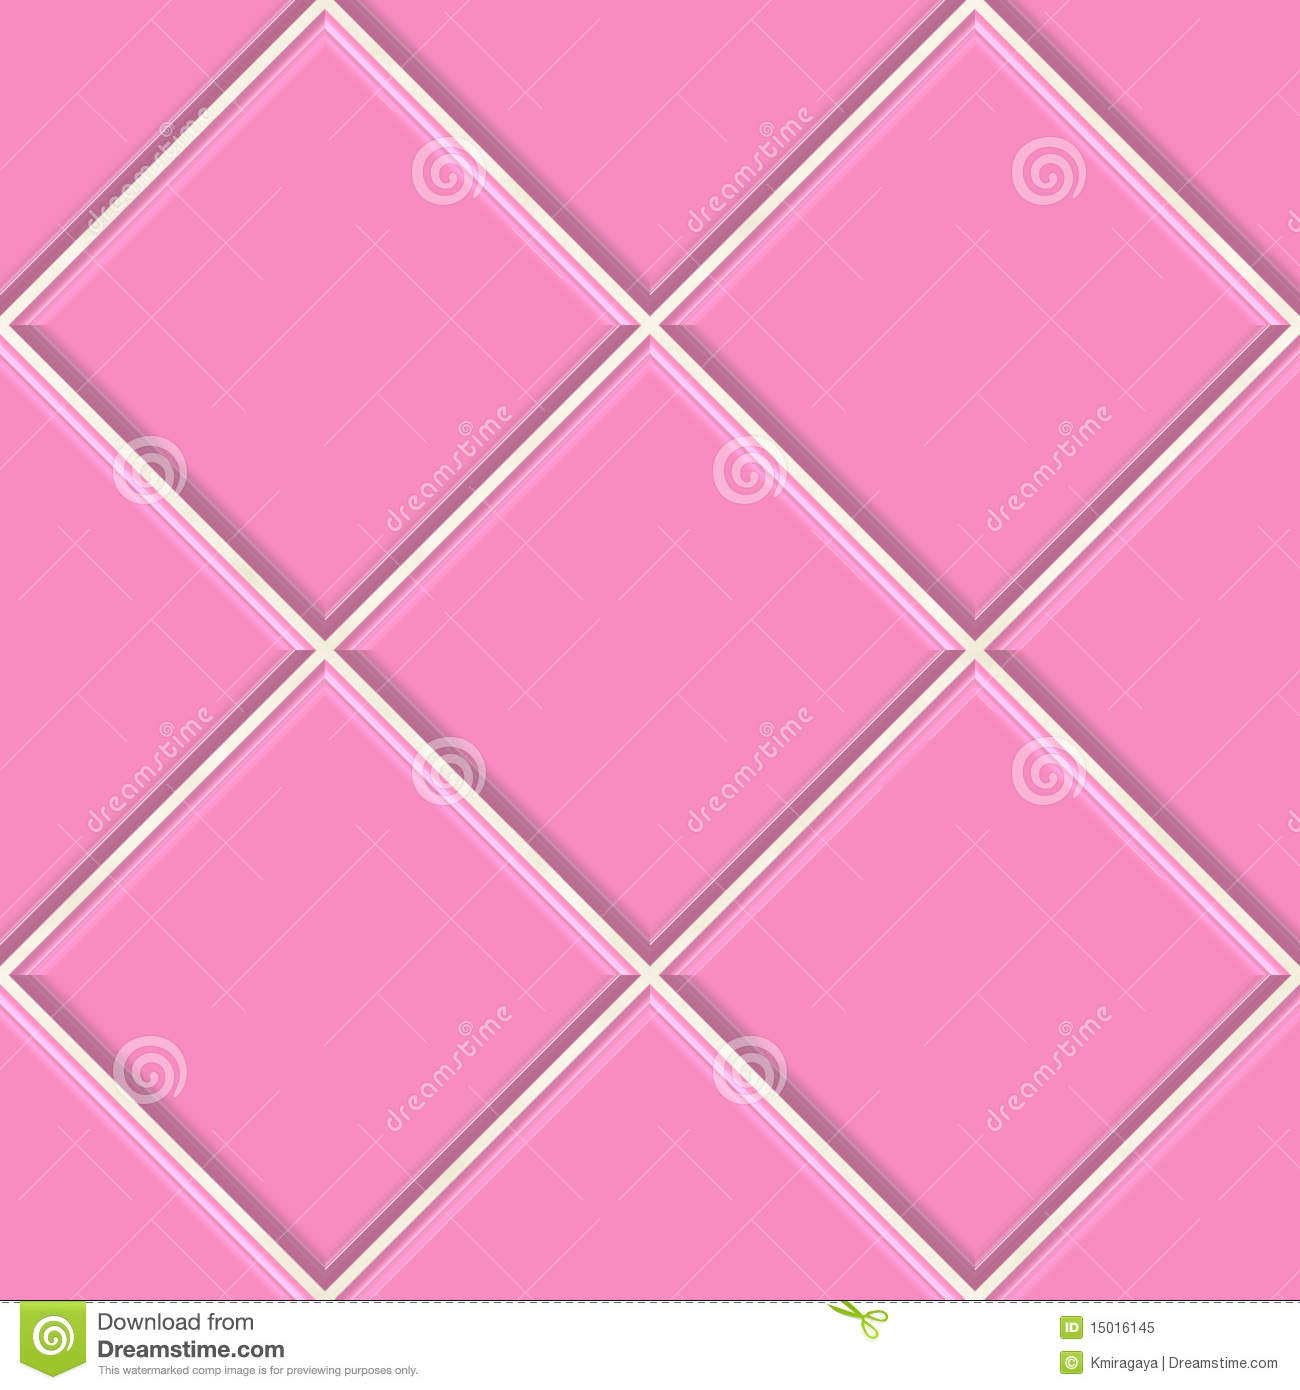 29 brilliant pink bathroom tiles texture eyagci perfect but today we will show you the different decorative wall tiles bathroom that take a dailygadgetfo Choice Image